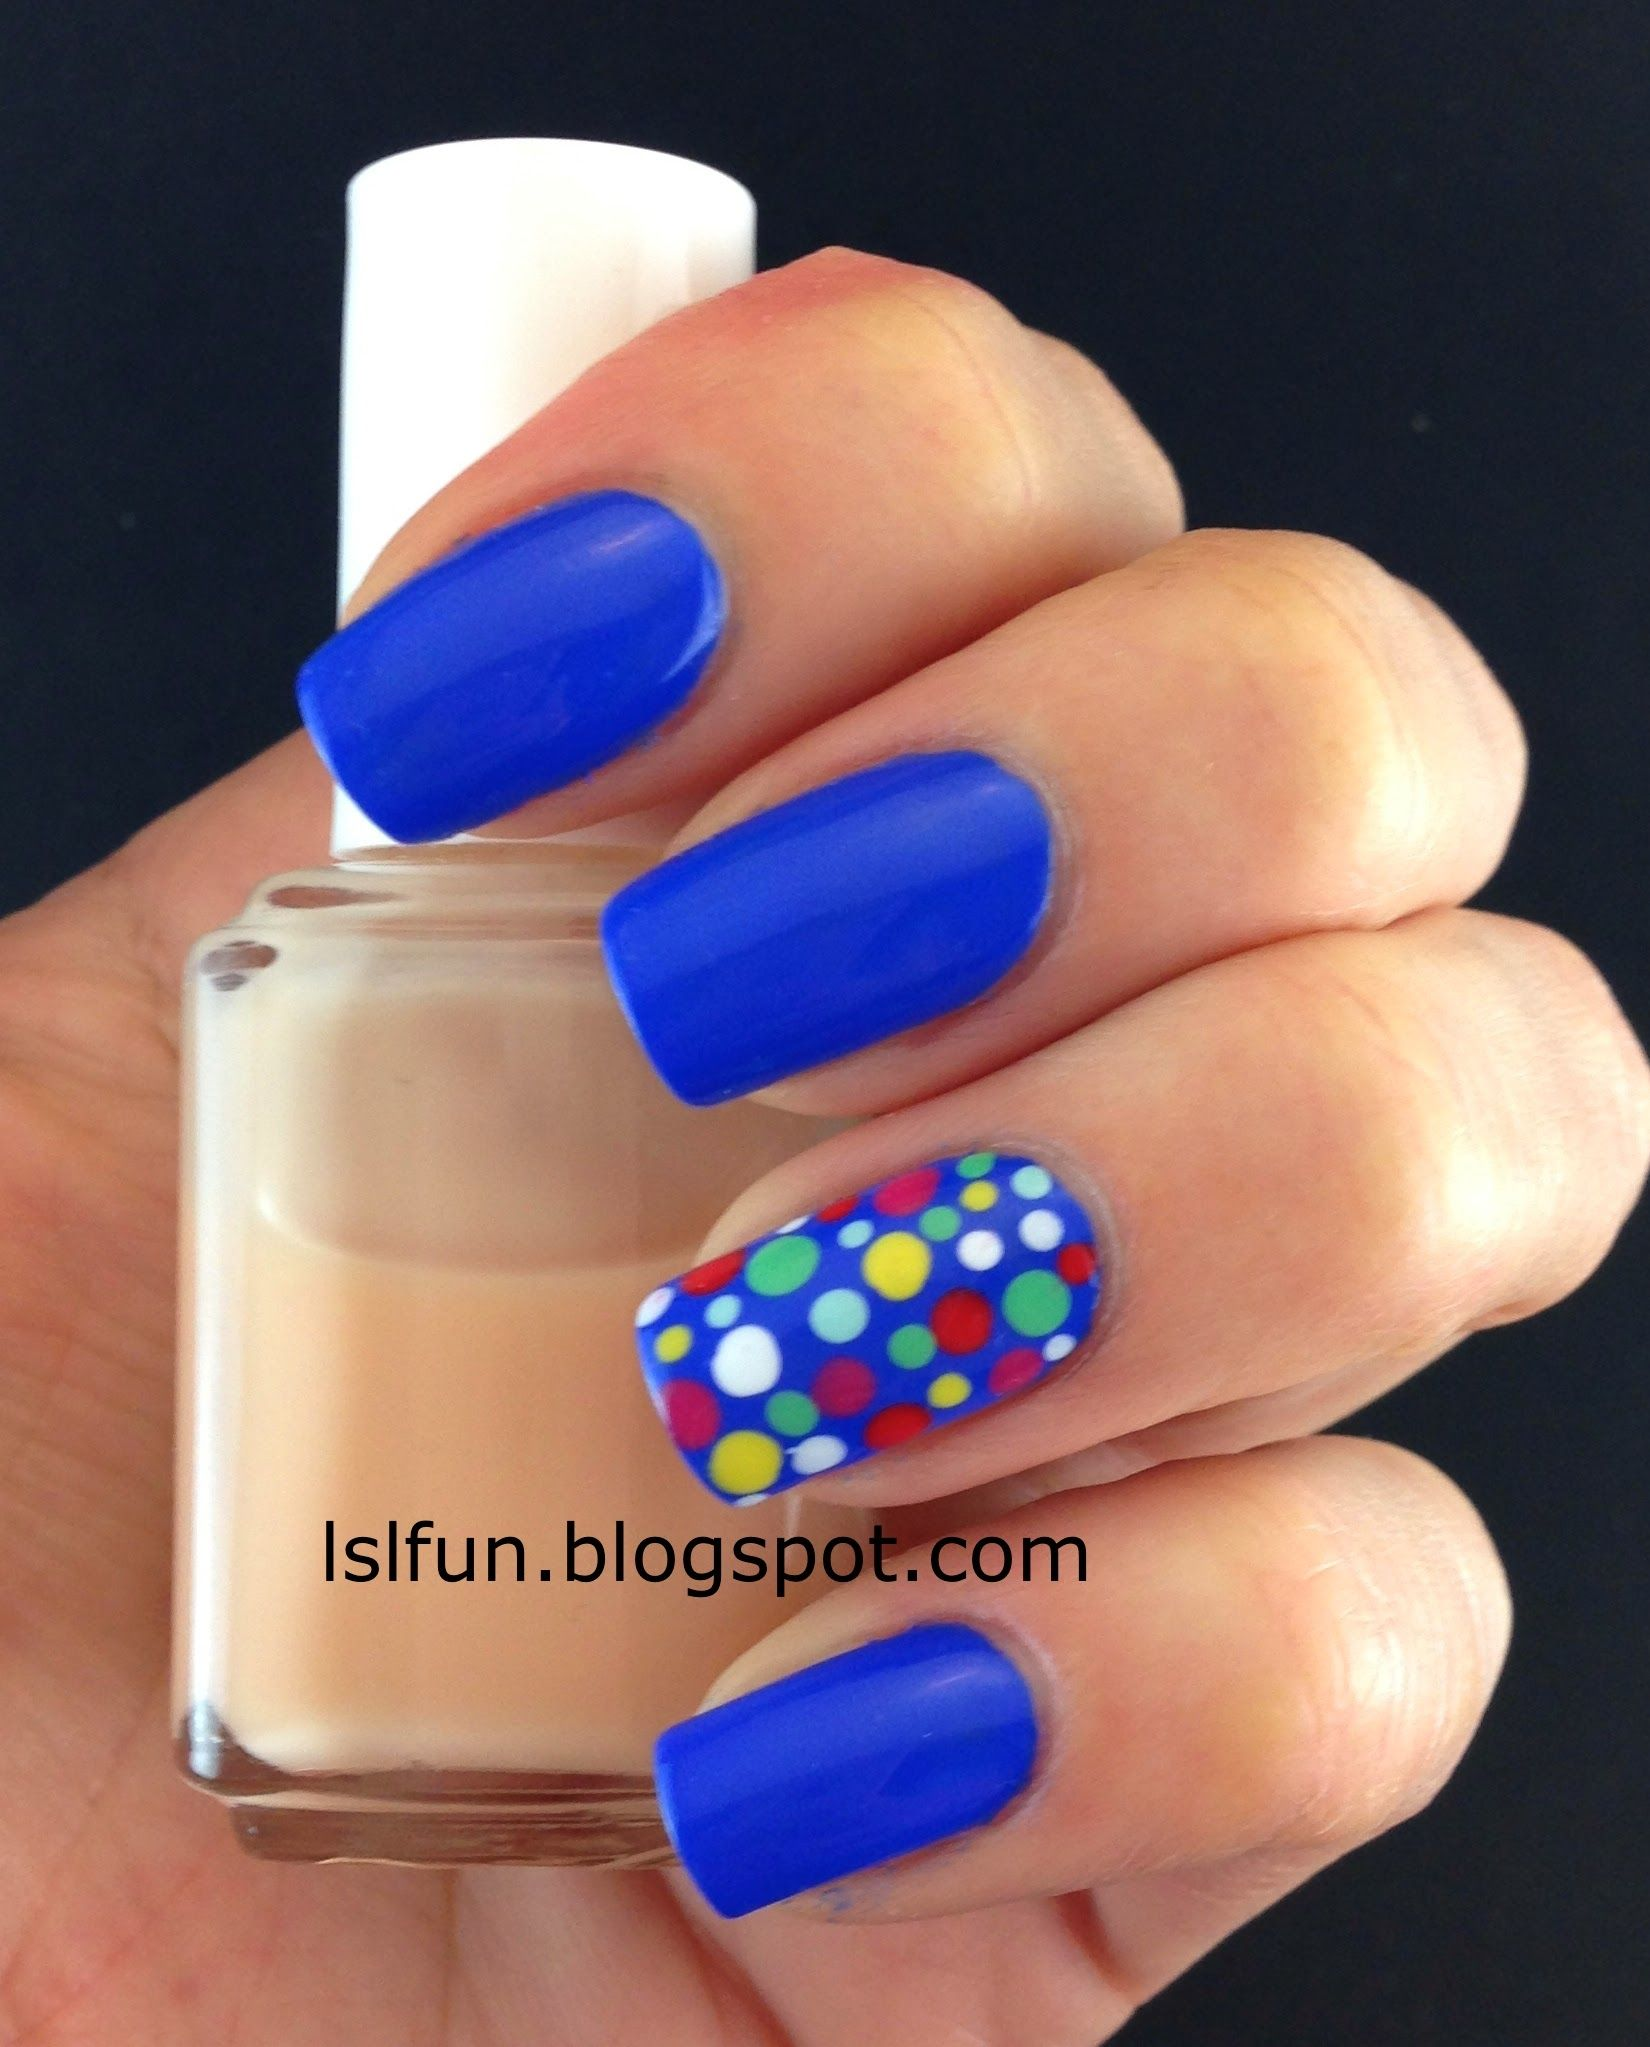 Nail Art For Beginners : 3 simple nail designs using dotting tool #lslfunblog #dottednails